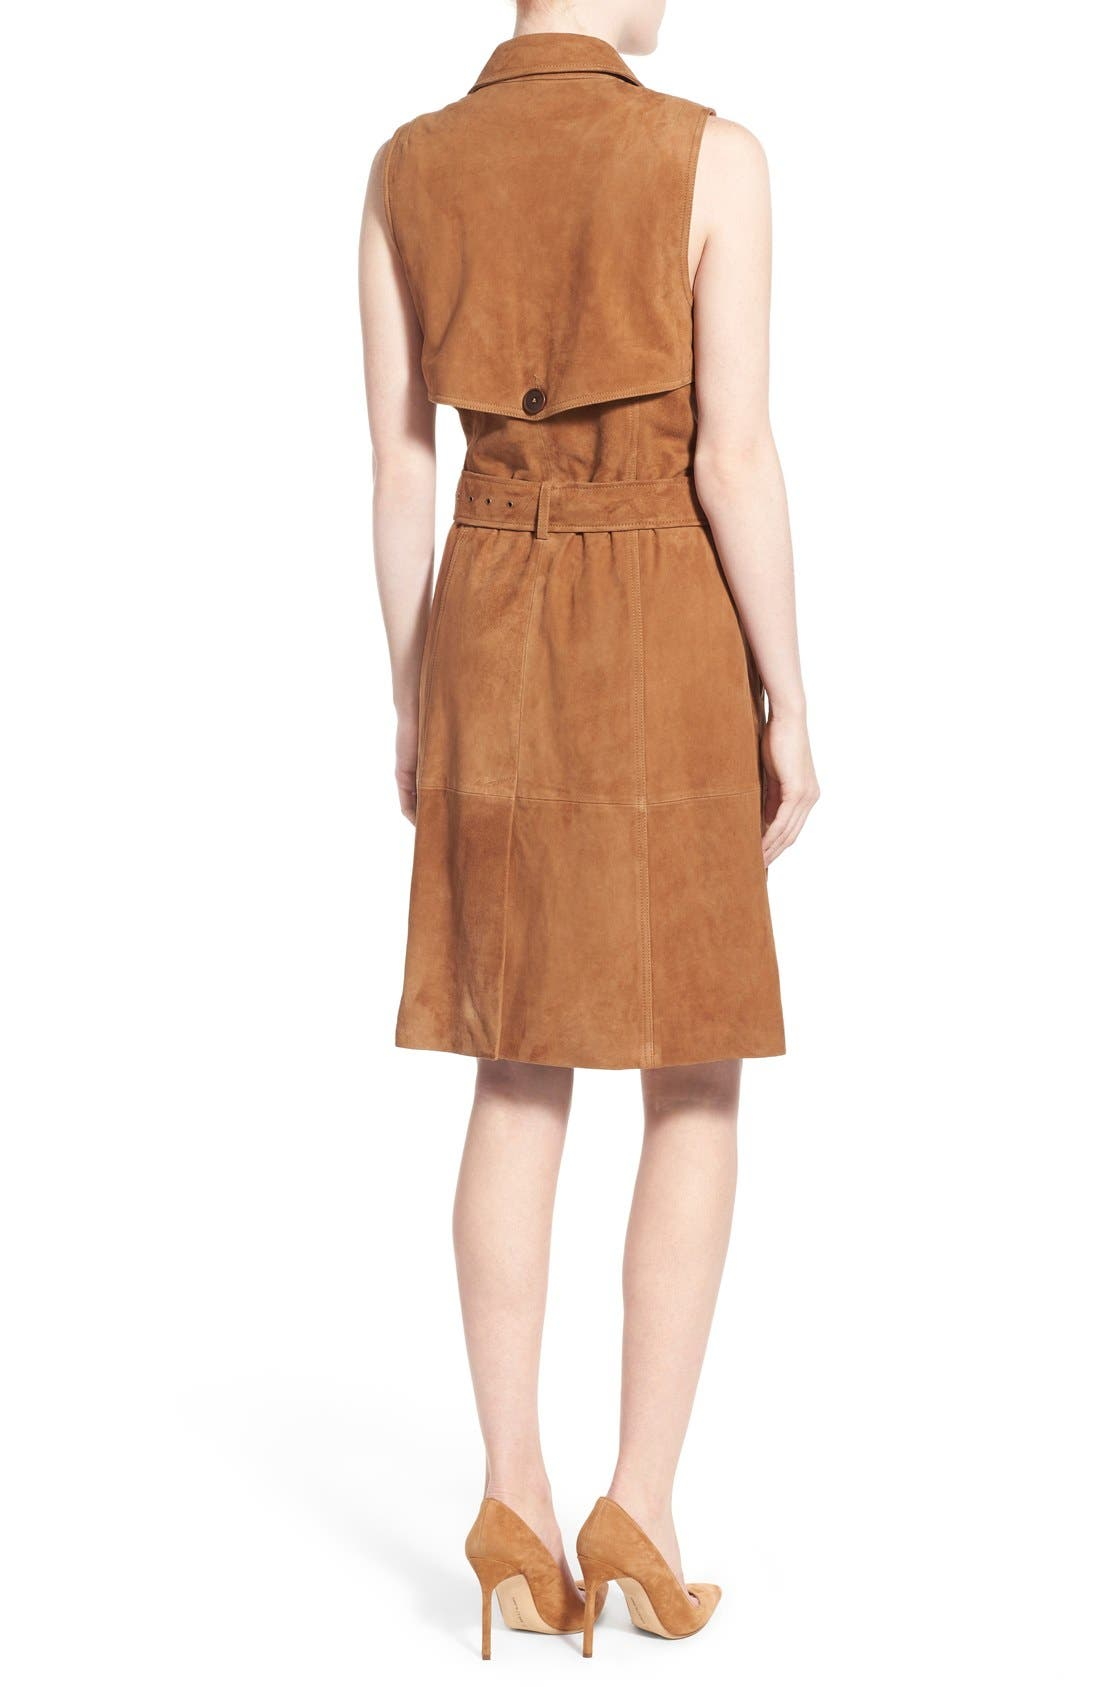 OLIVIA PALERMO + CHELSEA28,                             Sleeveless Suede Trench Dress,                             Alternate thumbnail 3, color,                             235